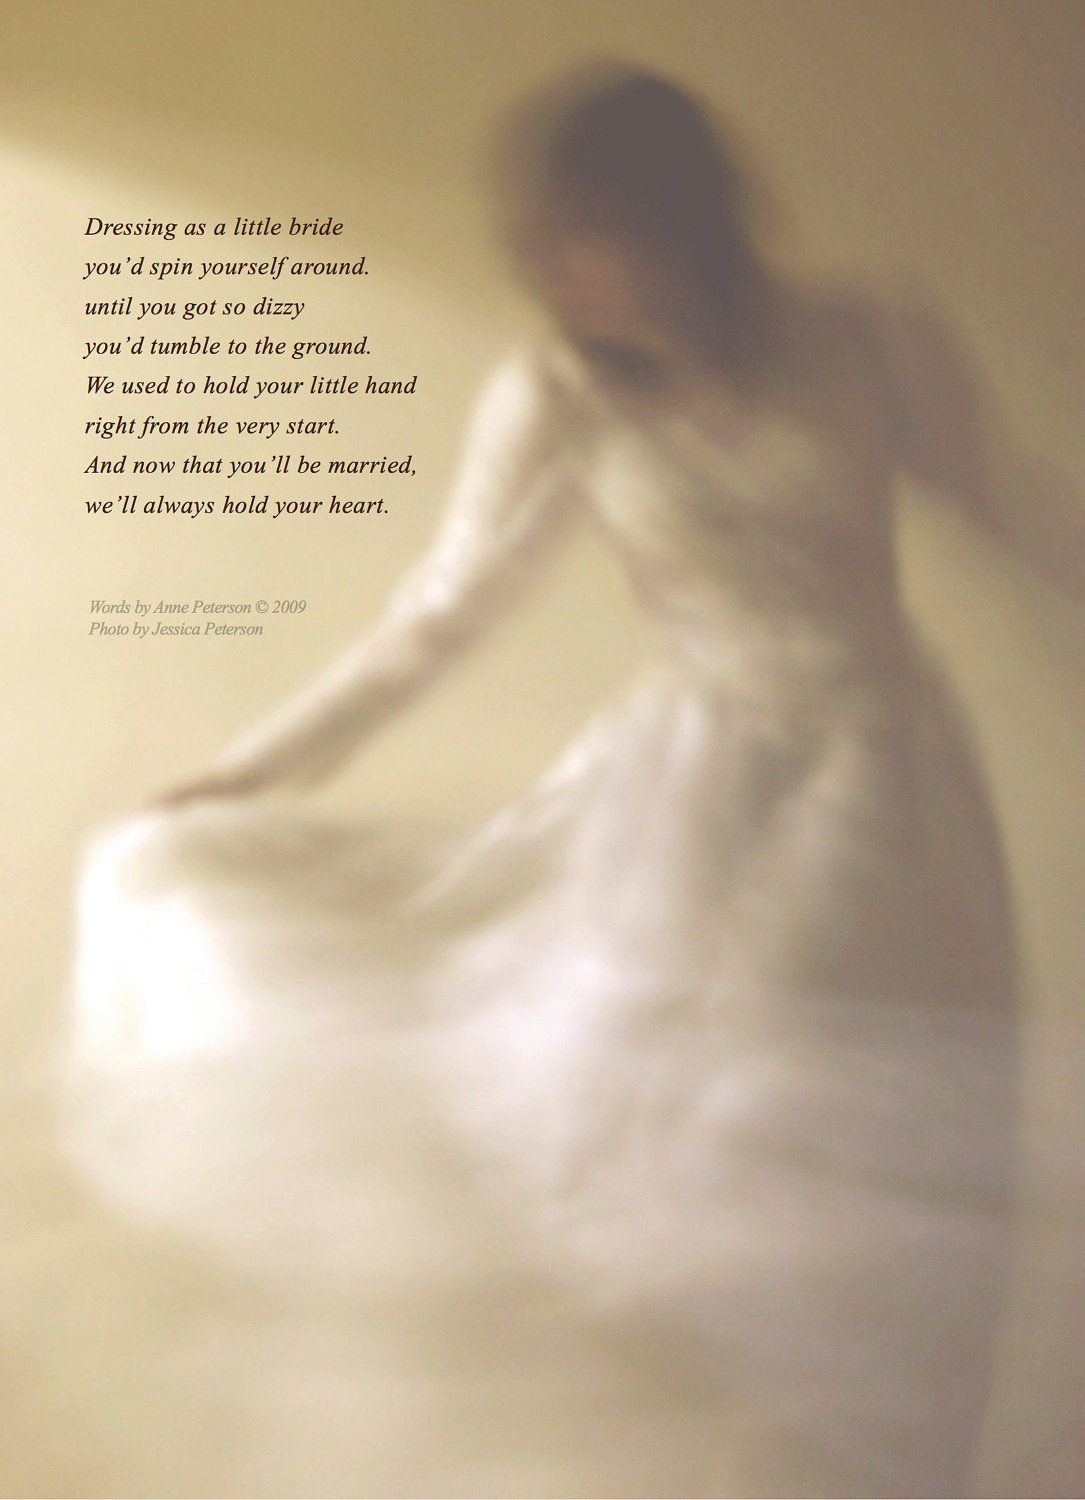 11x14 Nostalgic Poem To Daughter Little By Annepetersonpoetry